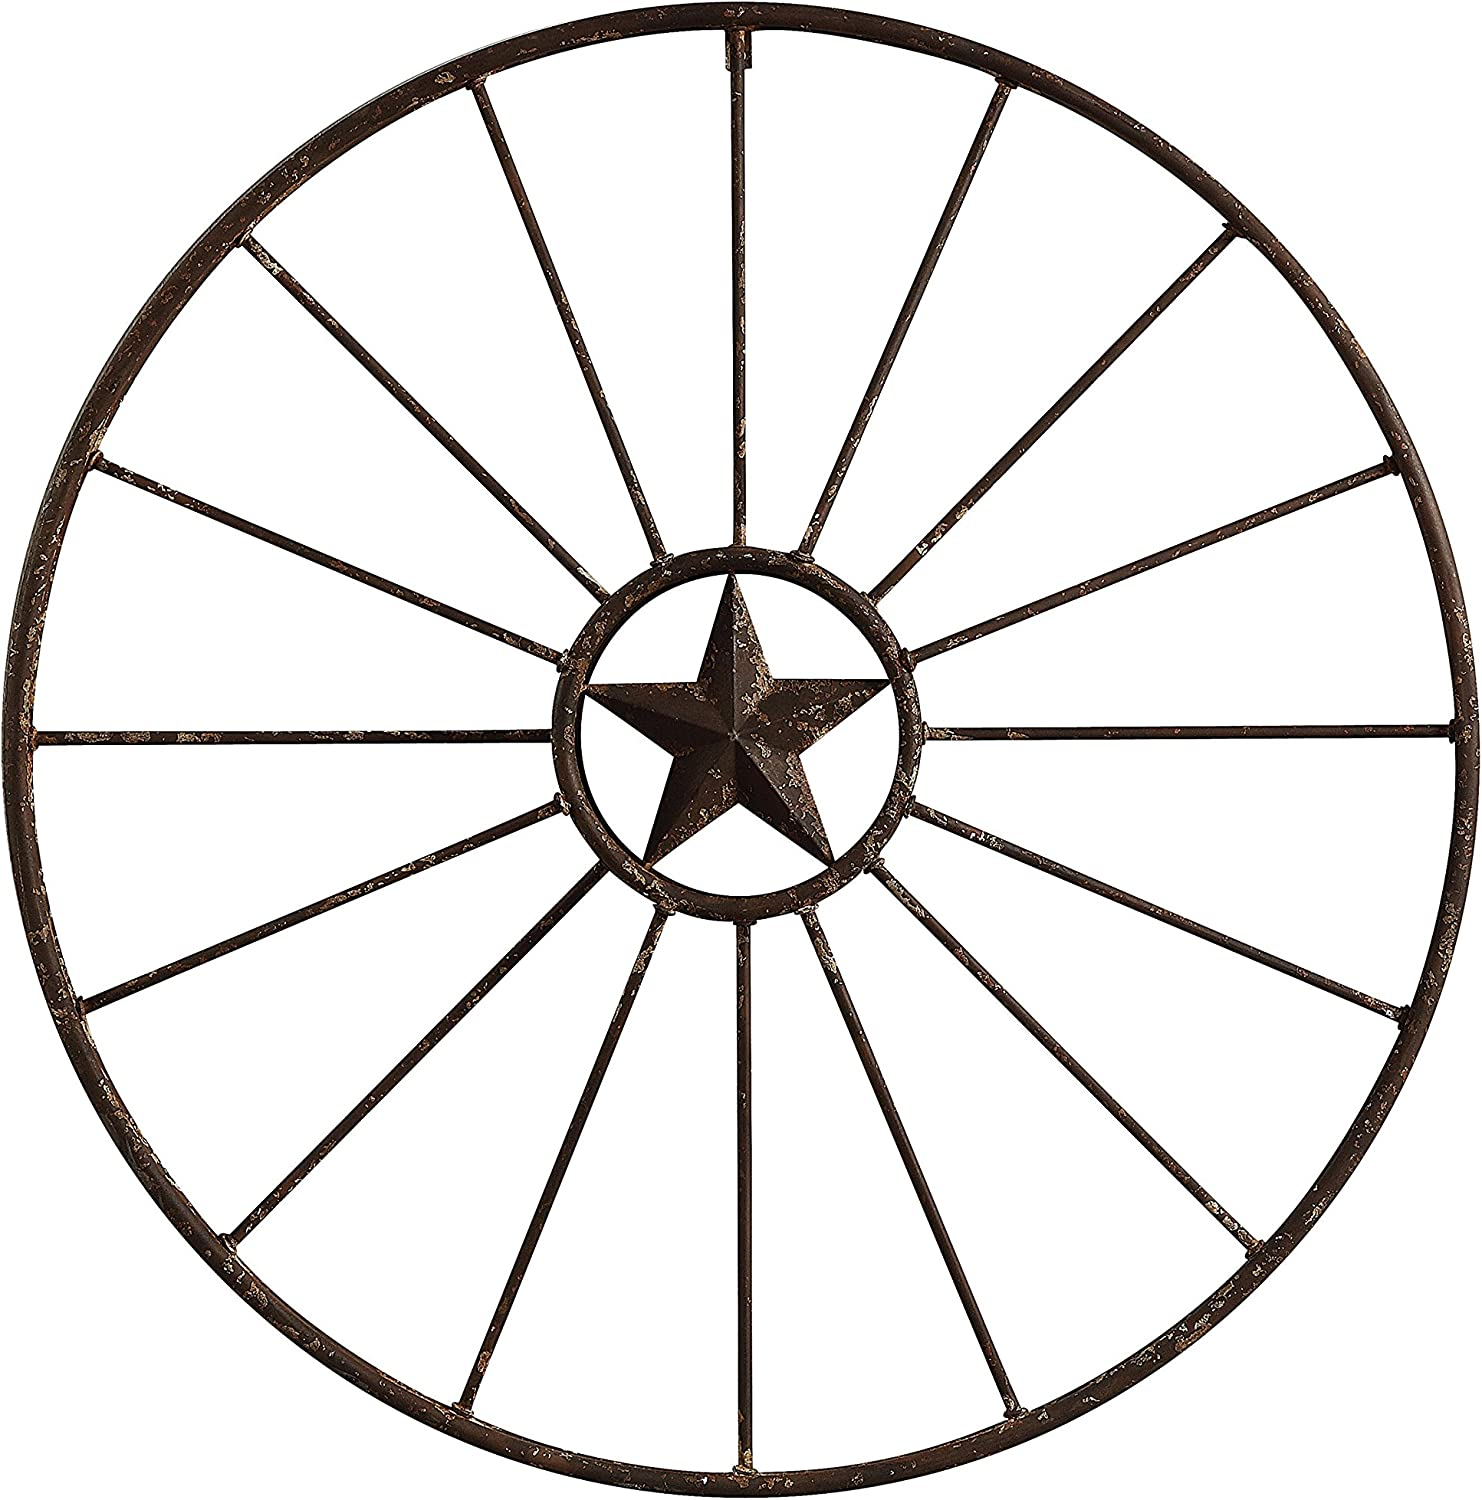 Creative Co-op Wagon Wheel with Star Wall Décor